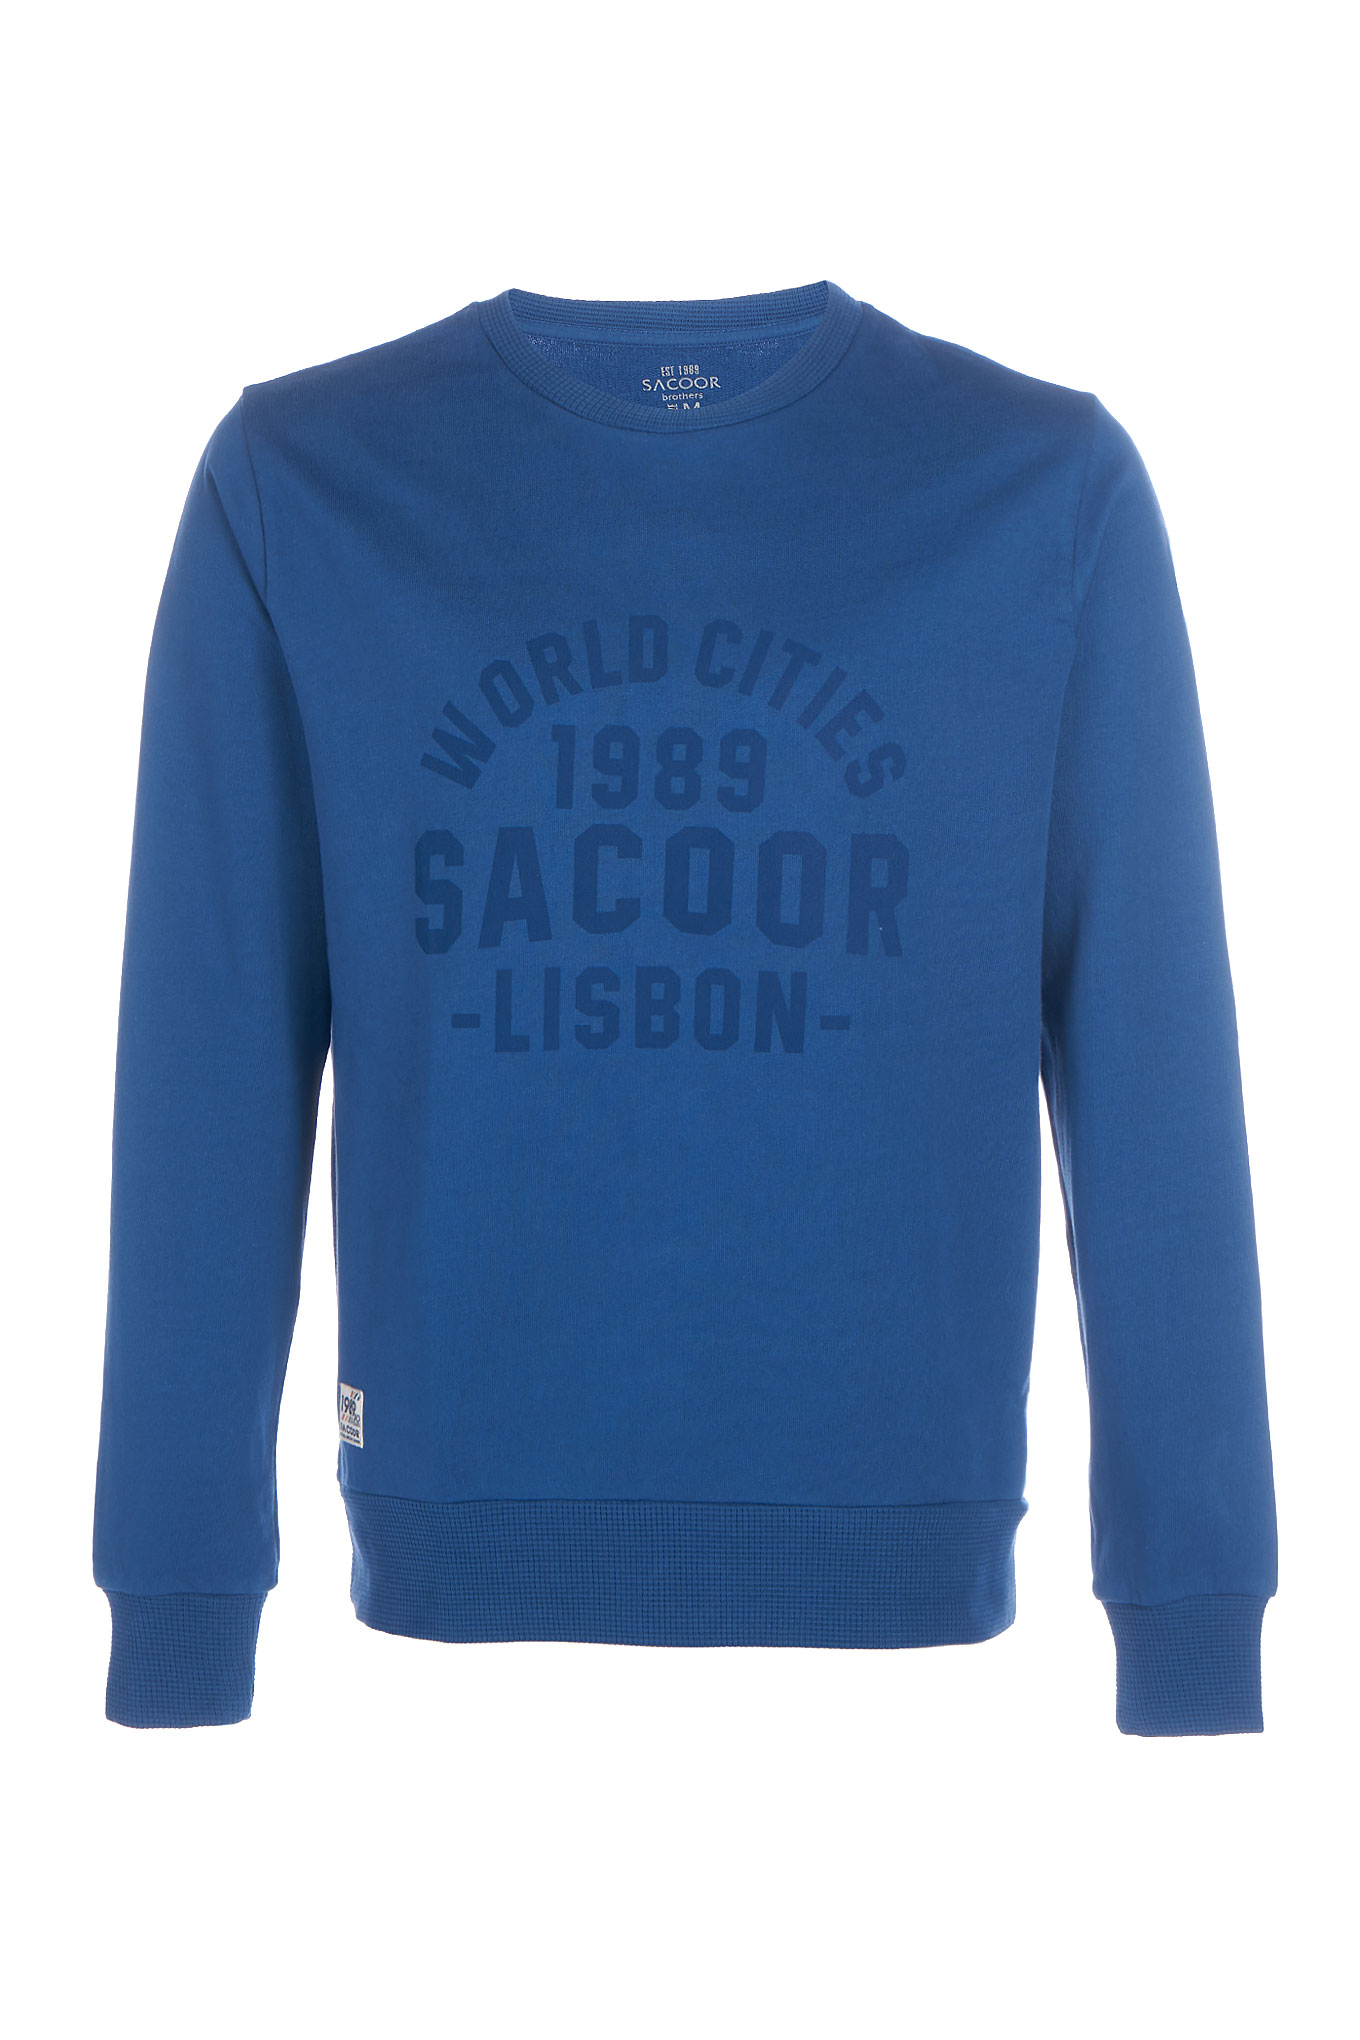 Sweatshirt Royal Blue Sport Man